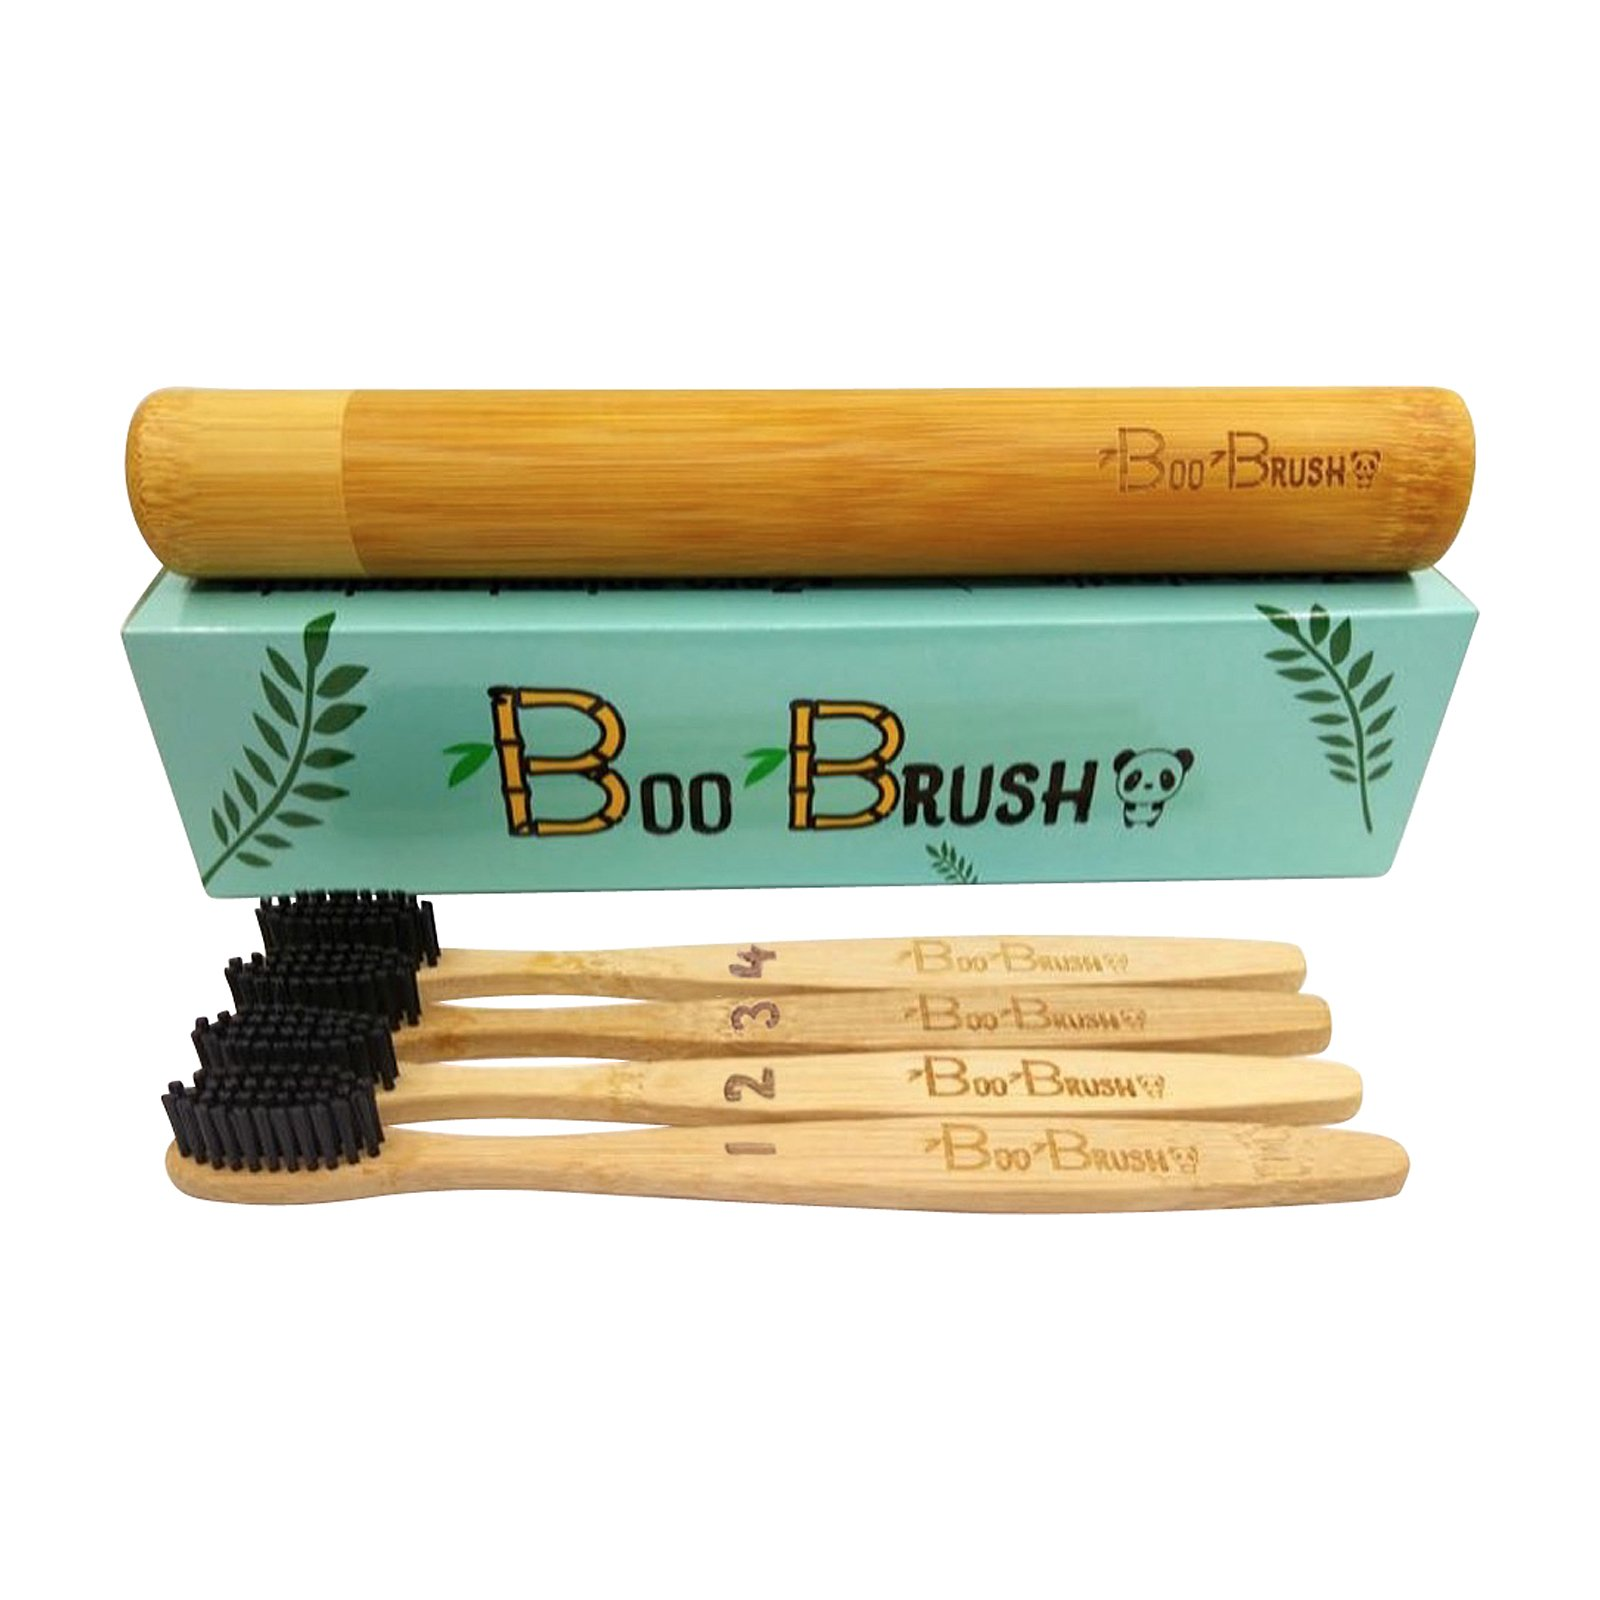 Bamboo Toothbrush|Charcoal Activated Soft/Med Bristles|Natural 100% Biodegradable Handle|